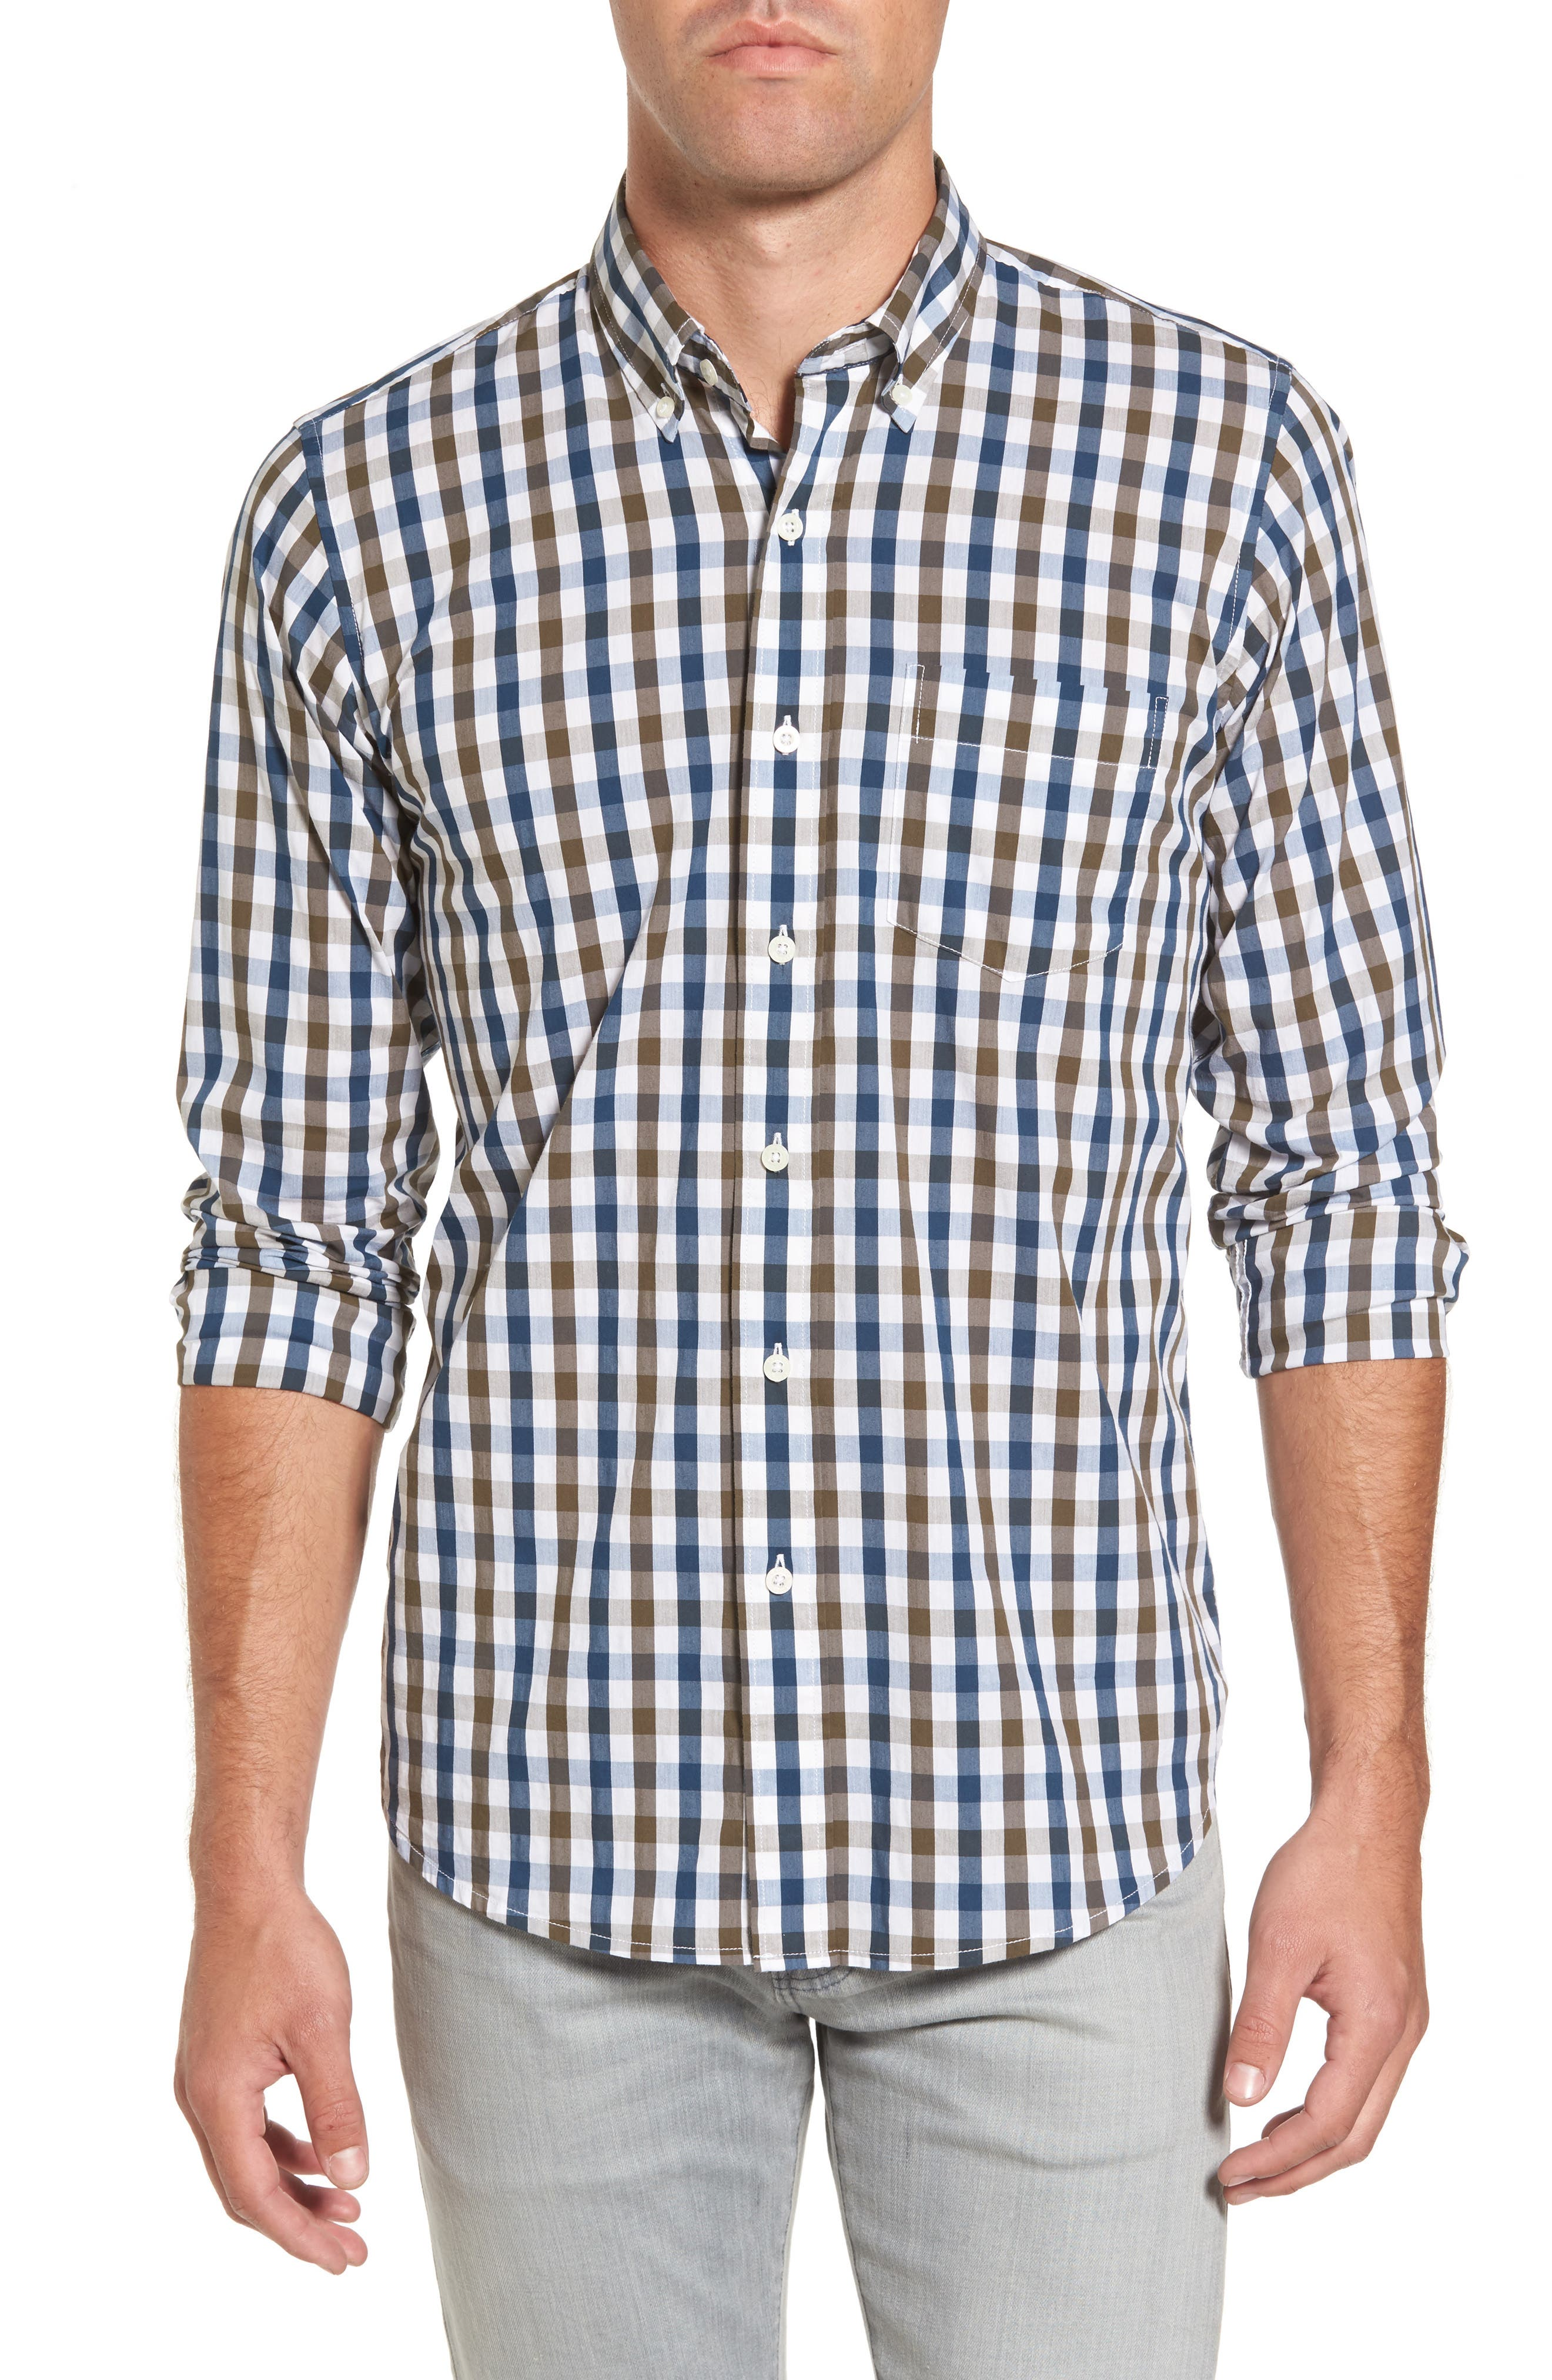 Regular Fit Performance Sport Shirt,                             Main thumbnail 1, color,                             Teal/ Army Tricolor Gingham